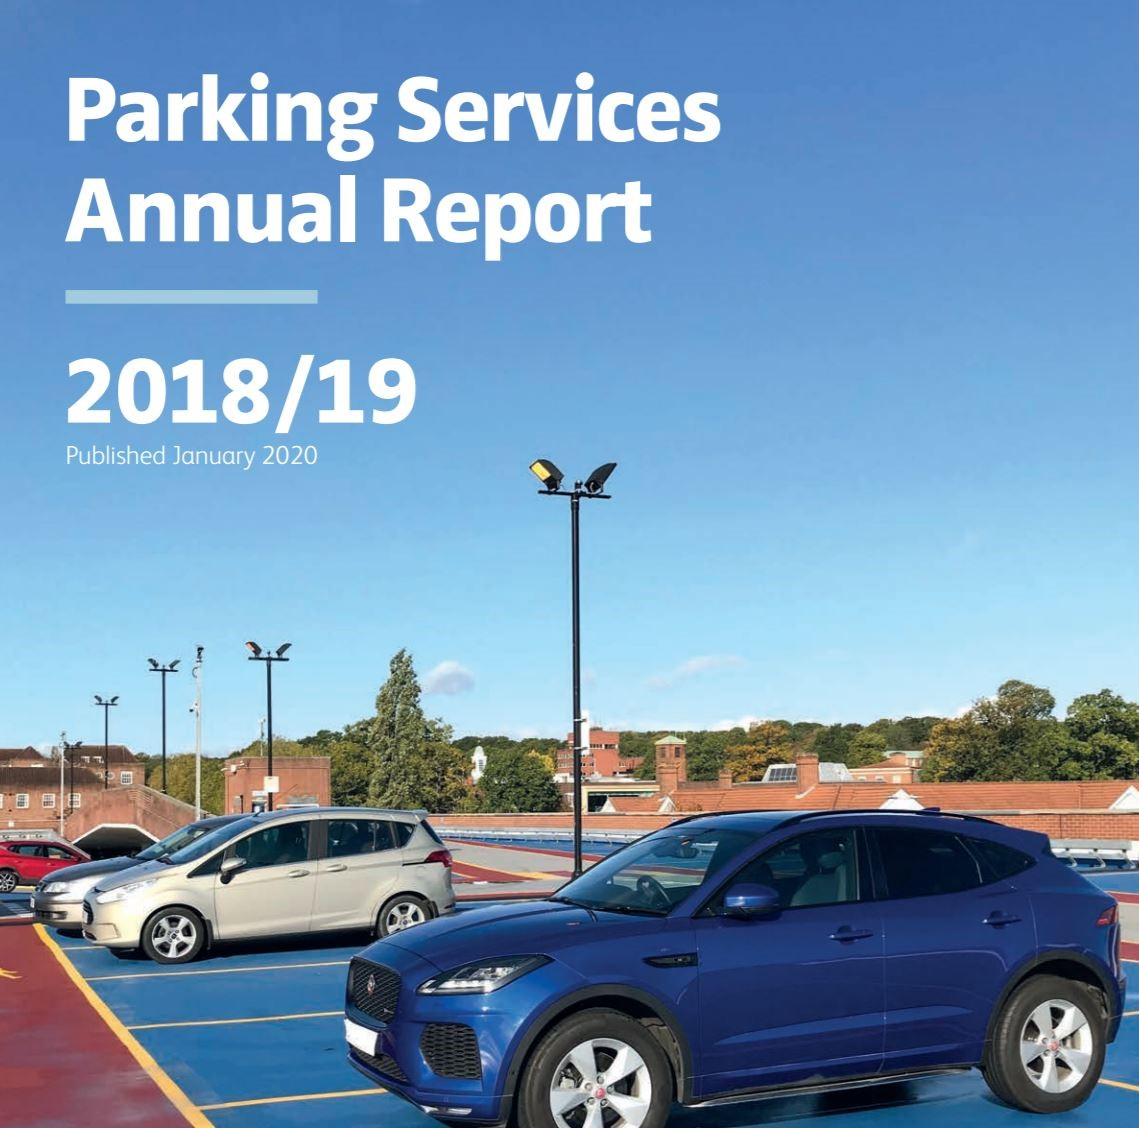 Cover of Welwyn Hatfield Borough Council 201819 Annual Report